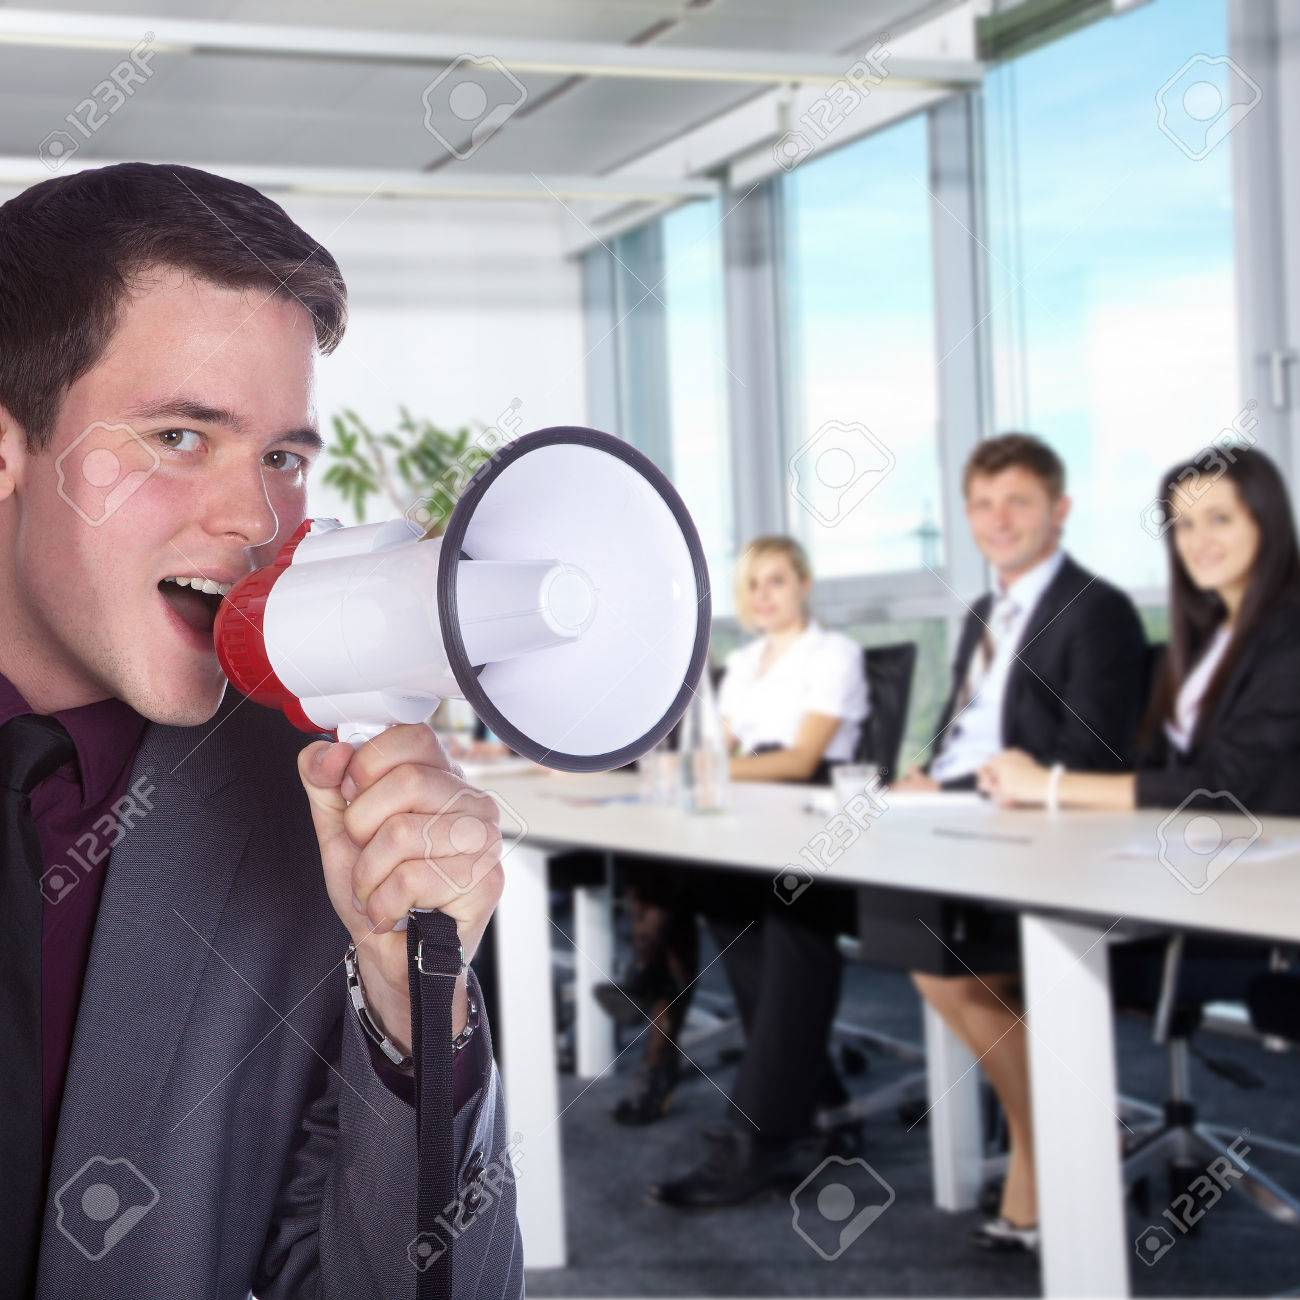 Business man with a megaphone in office - 32091880